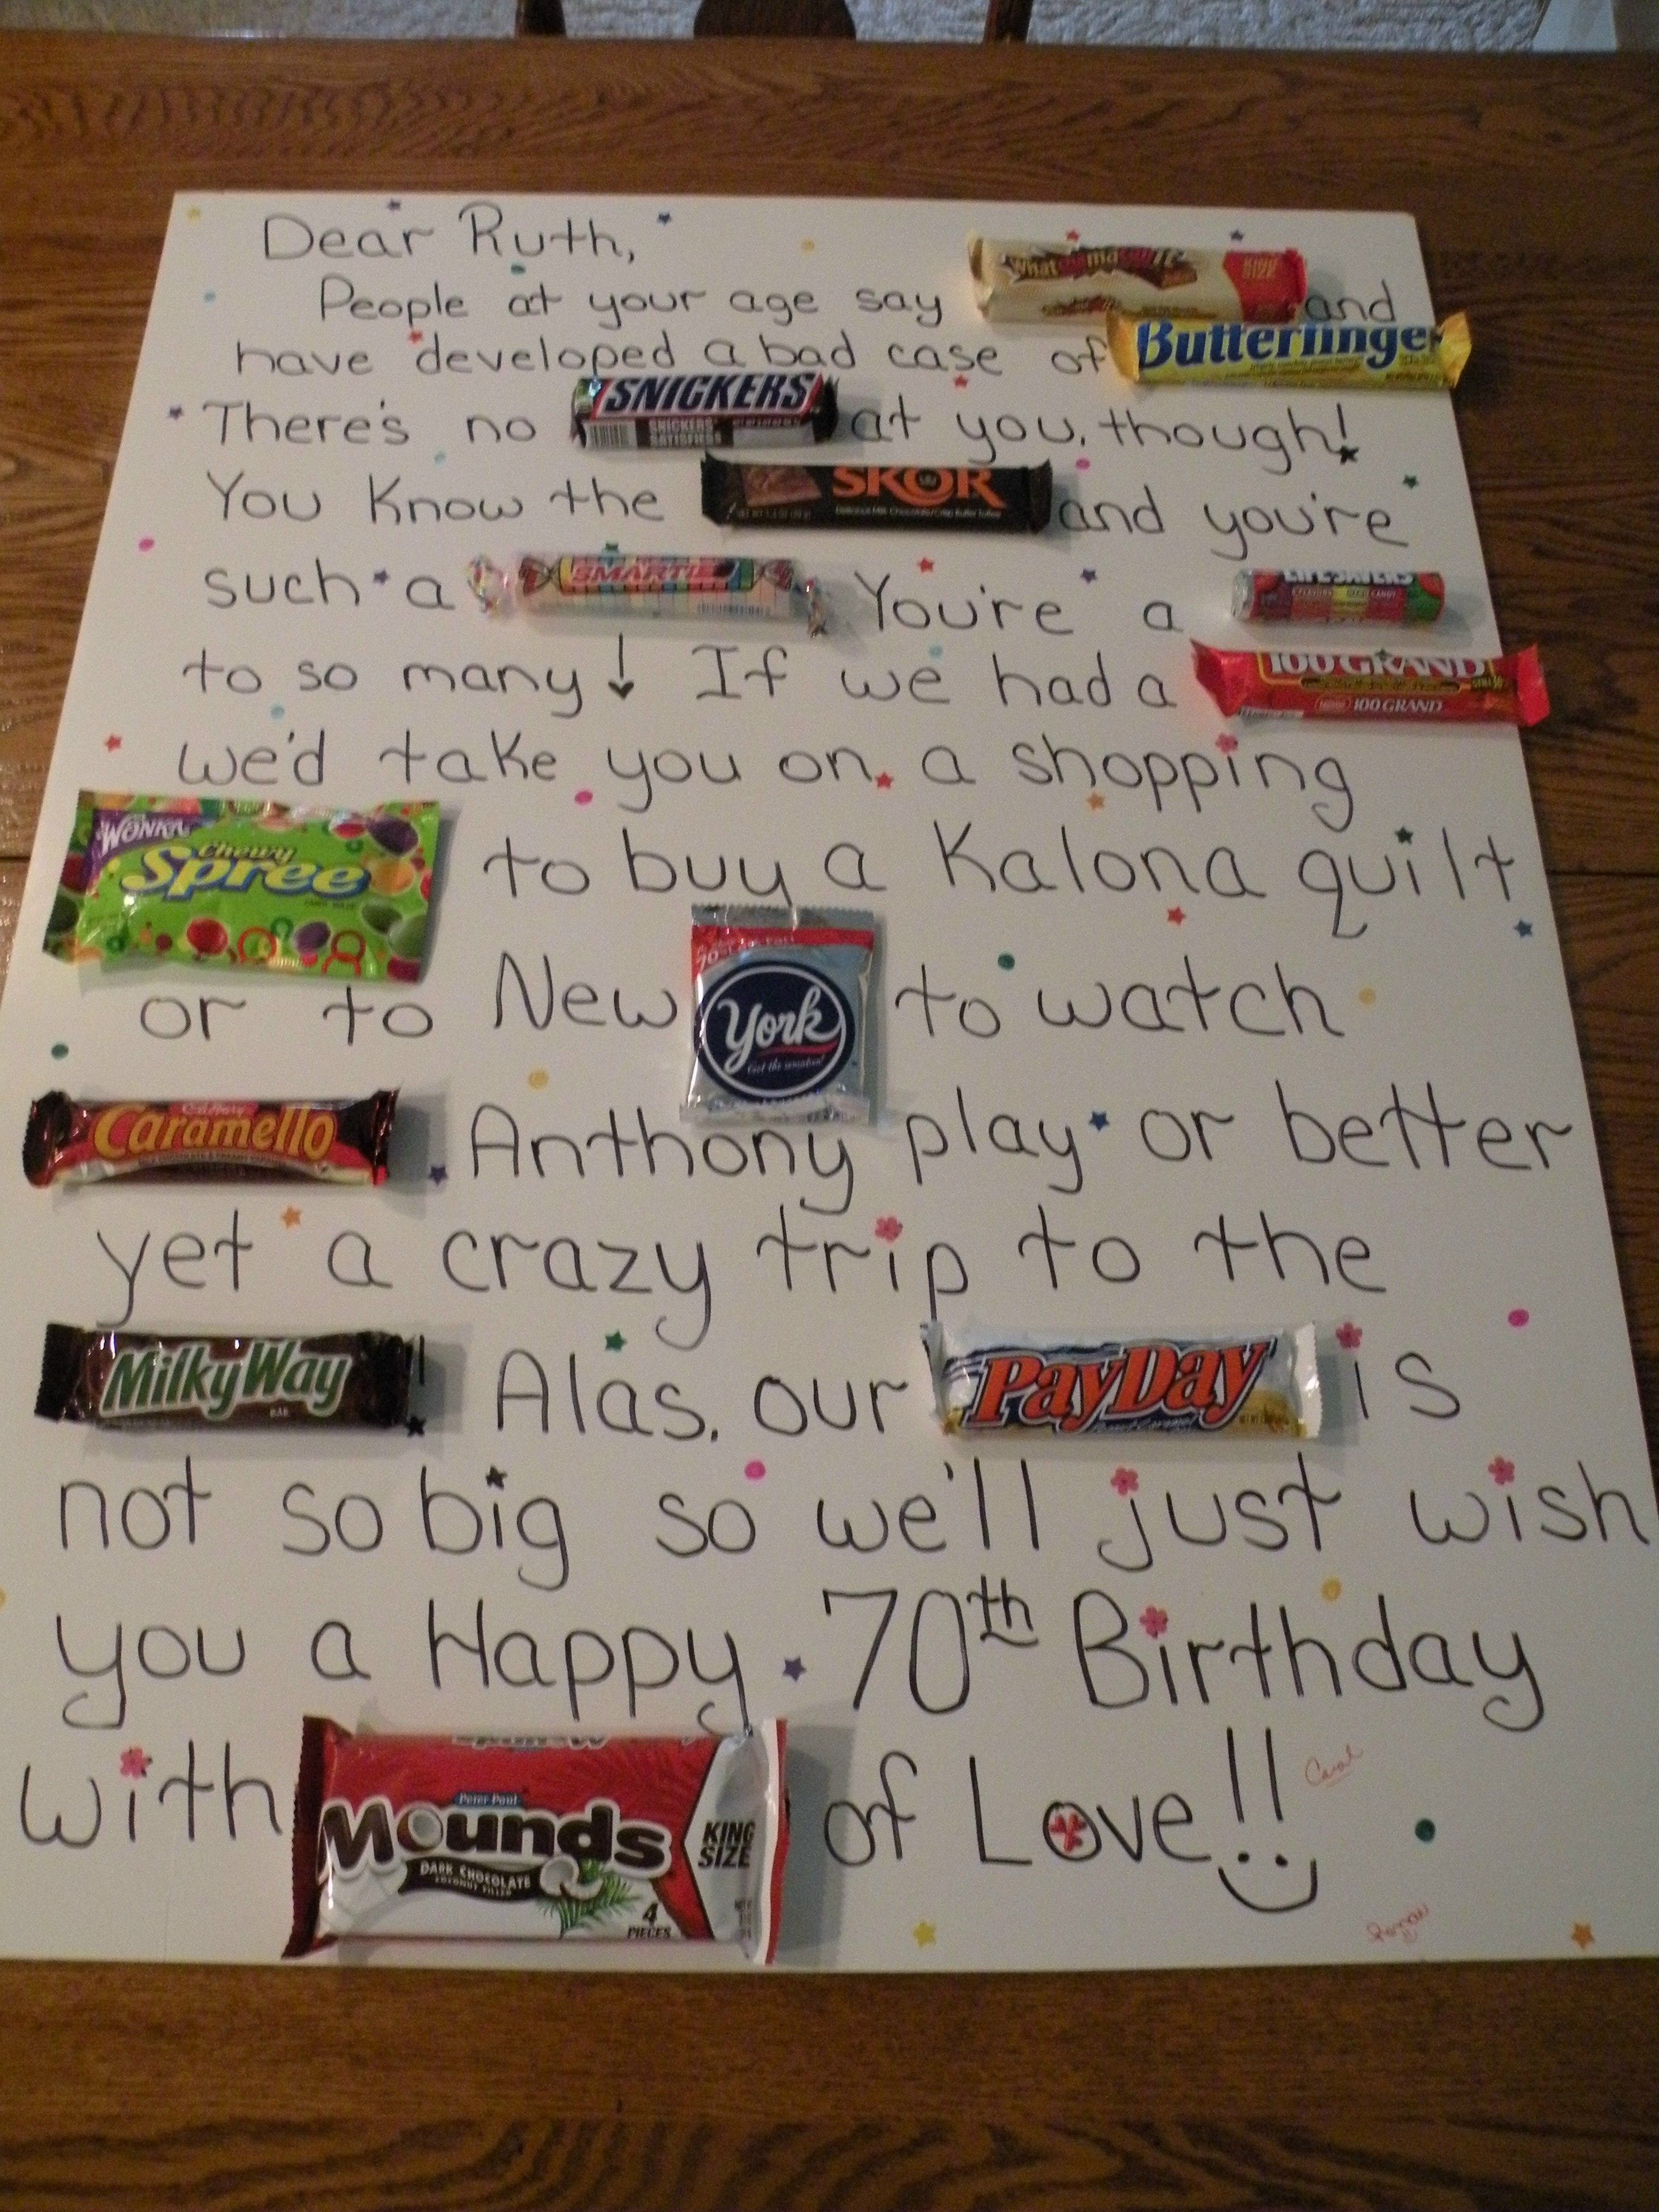 Candy bar birthday card gifts pinterest verjaardag snoep candy bar birthday card bookmarktalkfo Image collections